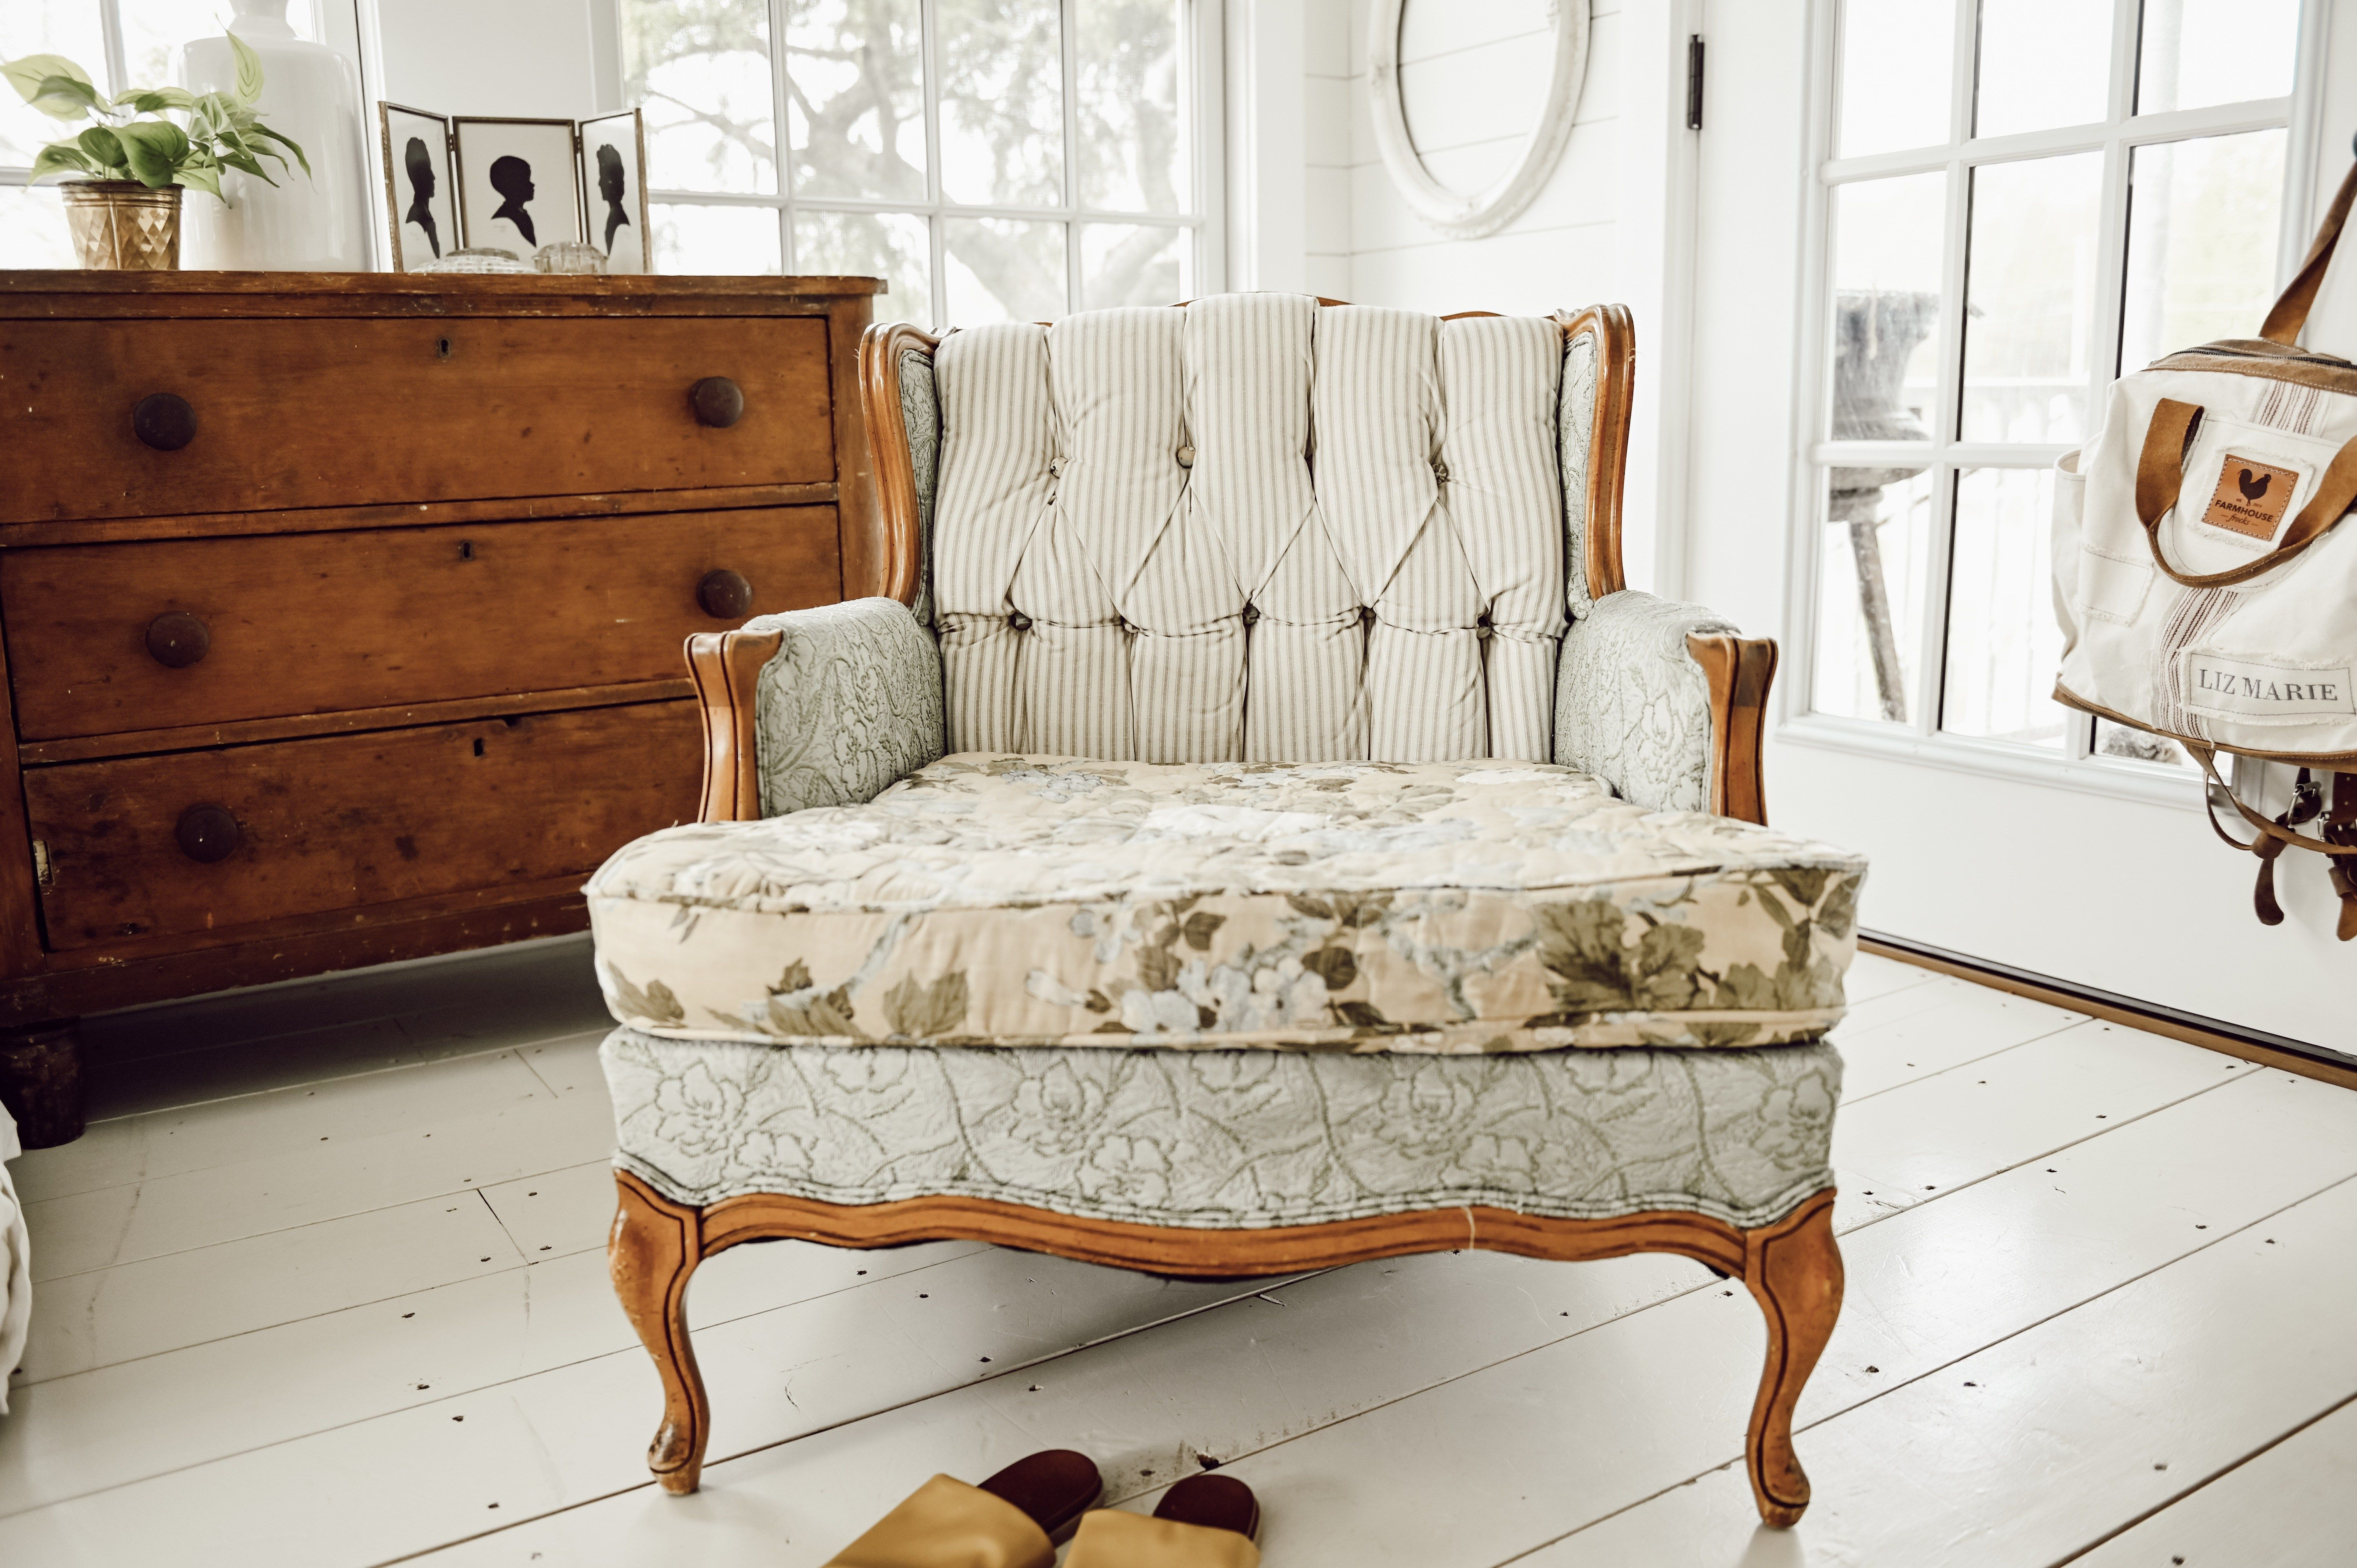 A new cozy vintage chair vintage chairs chair home